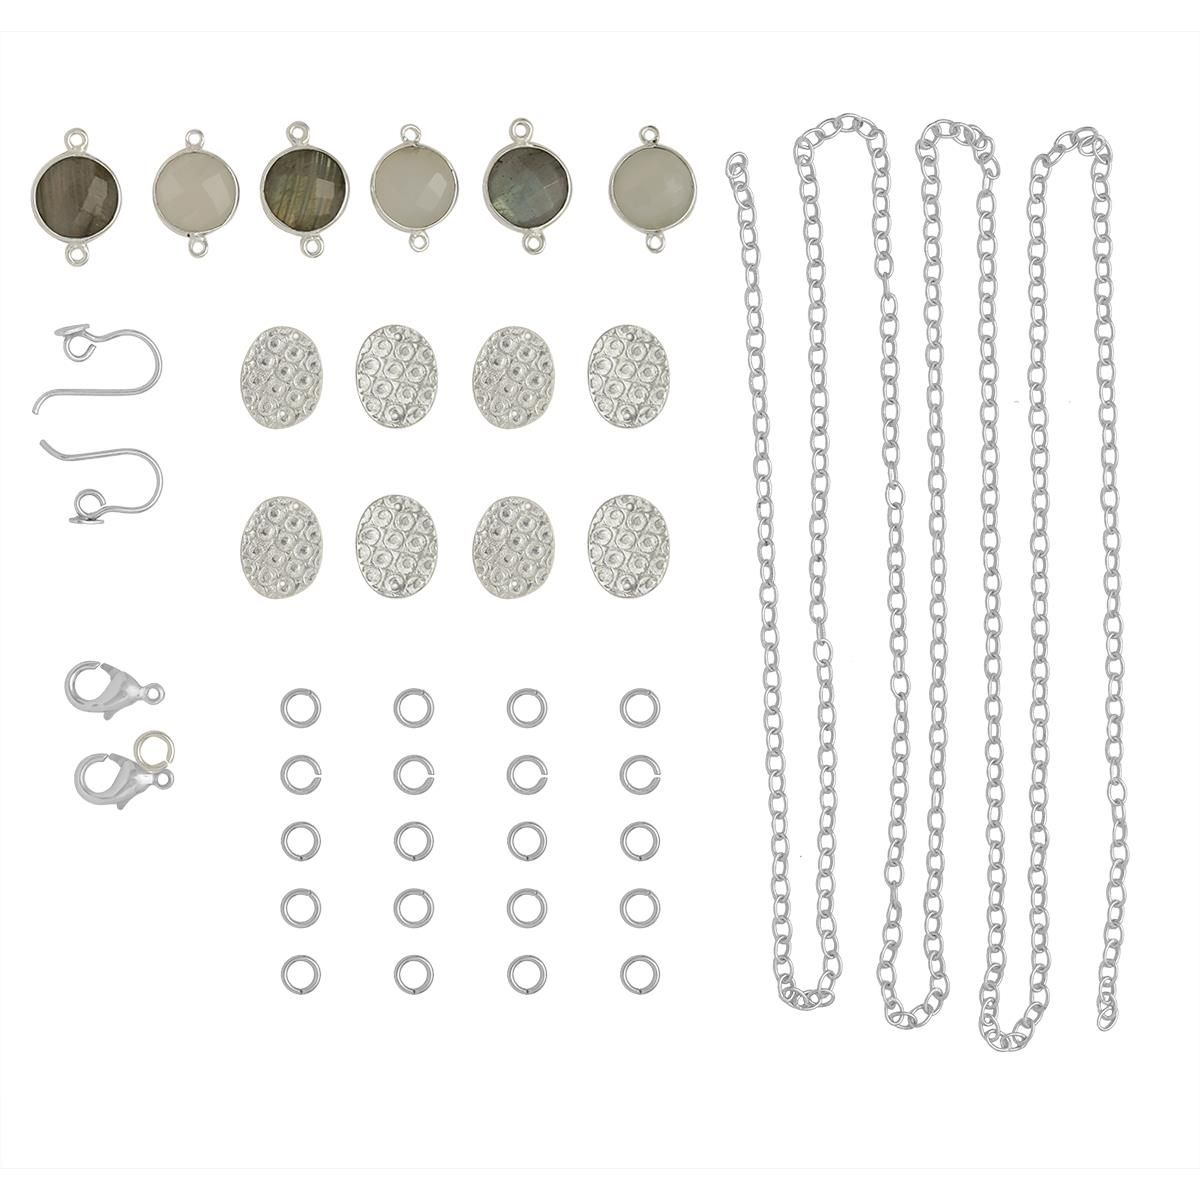 Silver Plated Copper Finding Kit Inc 20cts Labradorite